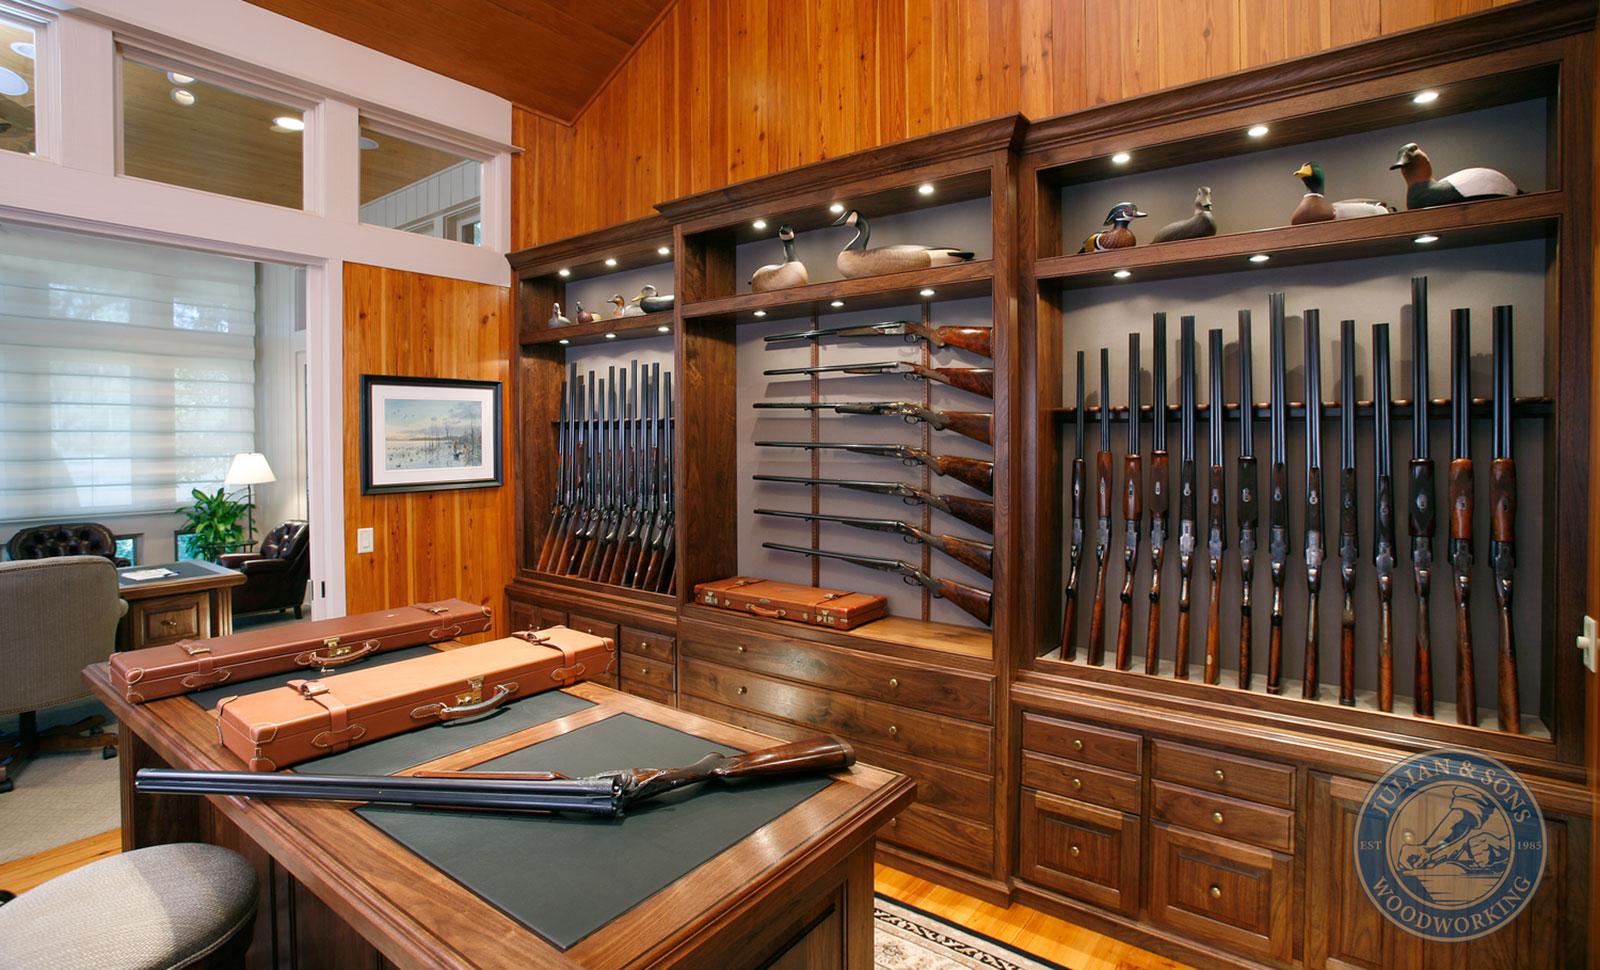 Julian & Sons, who build bespoke gun rooms for the likes of Gordy & Sons, will build you a beautiful room, like this. You can make a workable gun room yourself with a little time and effort.